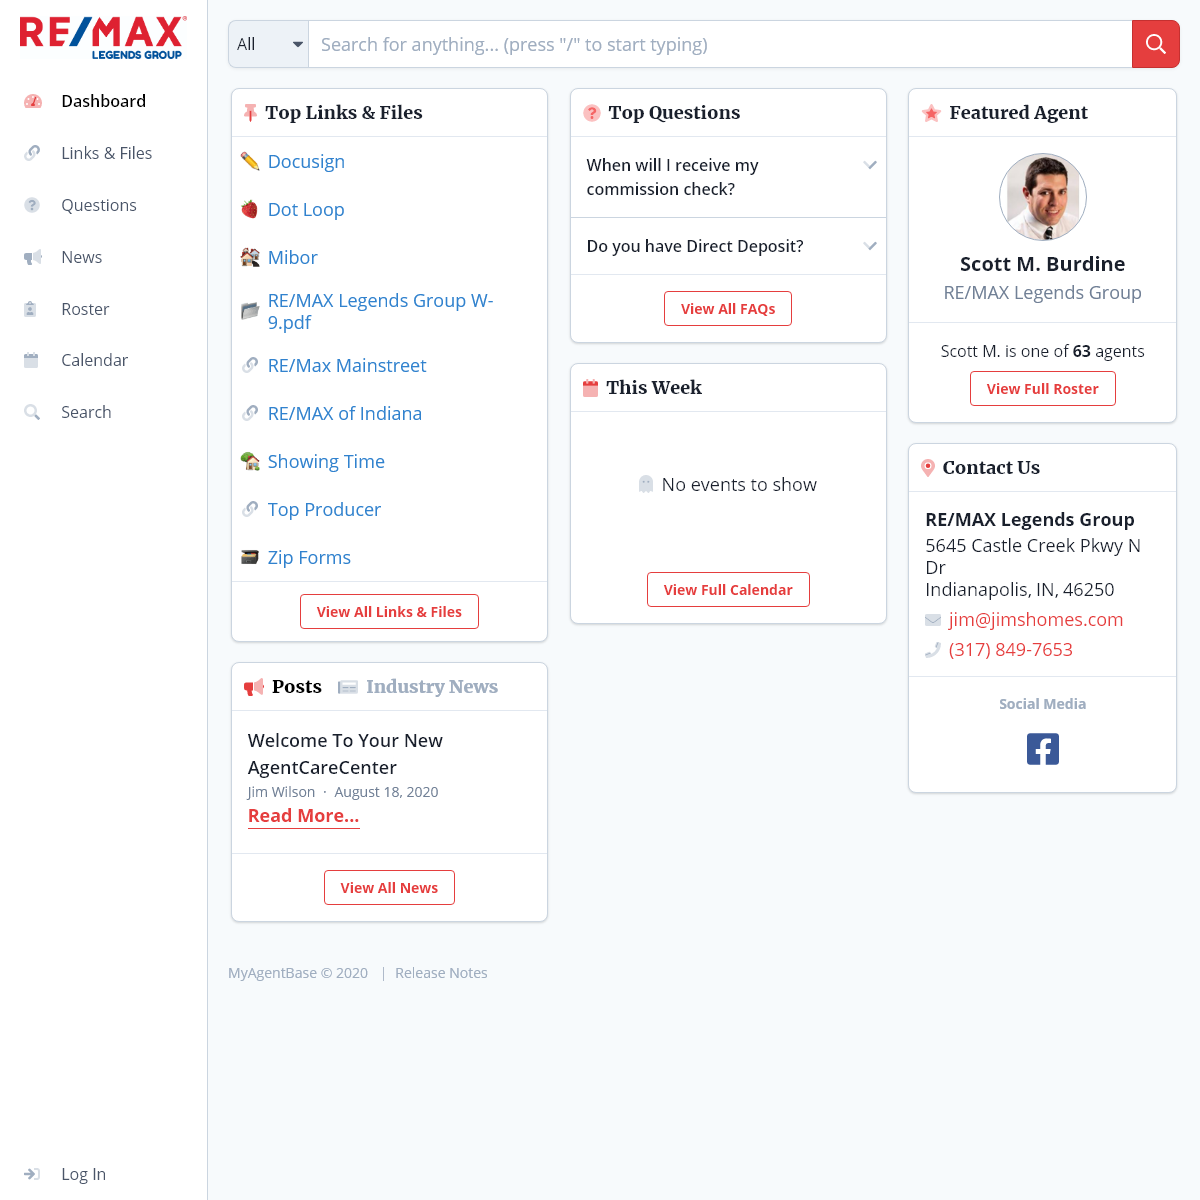 RE-MAX Legends Group · Dashboard